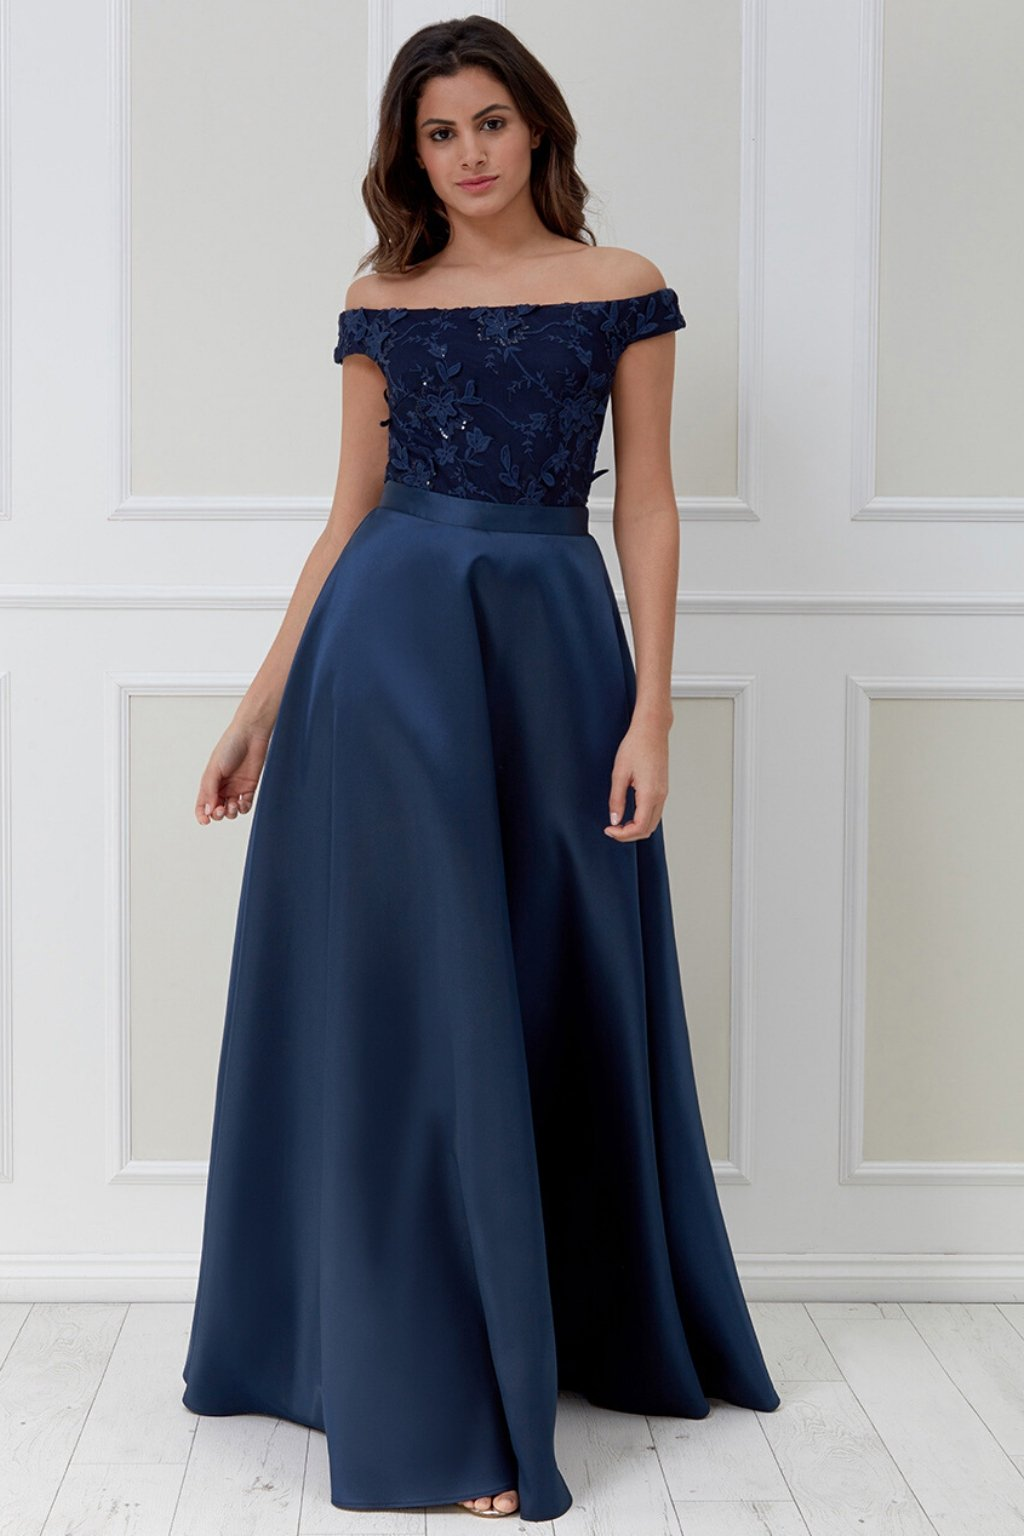 Navy pink formal dress with flowers